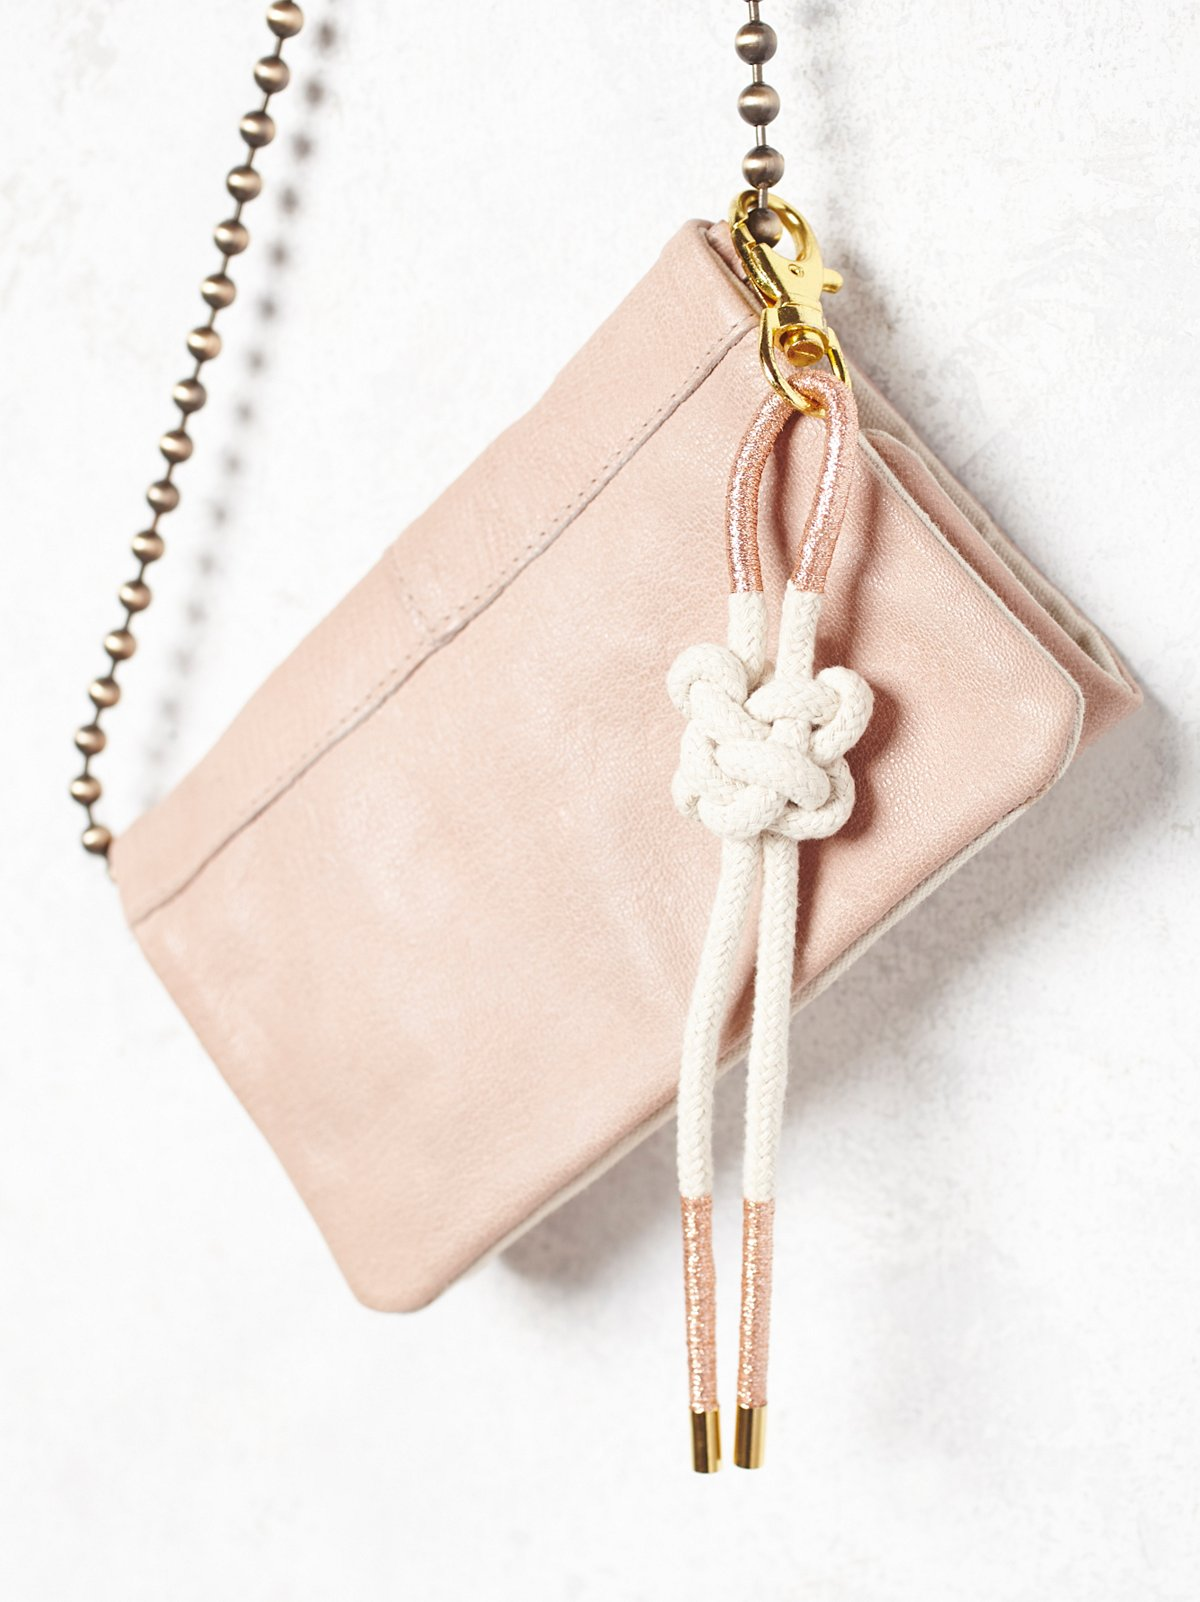 Rope Bag Bolo Keychain